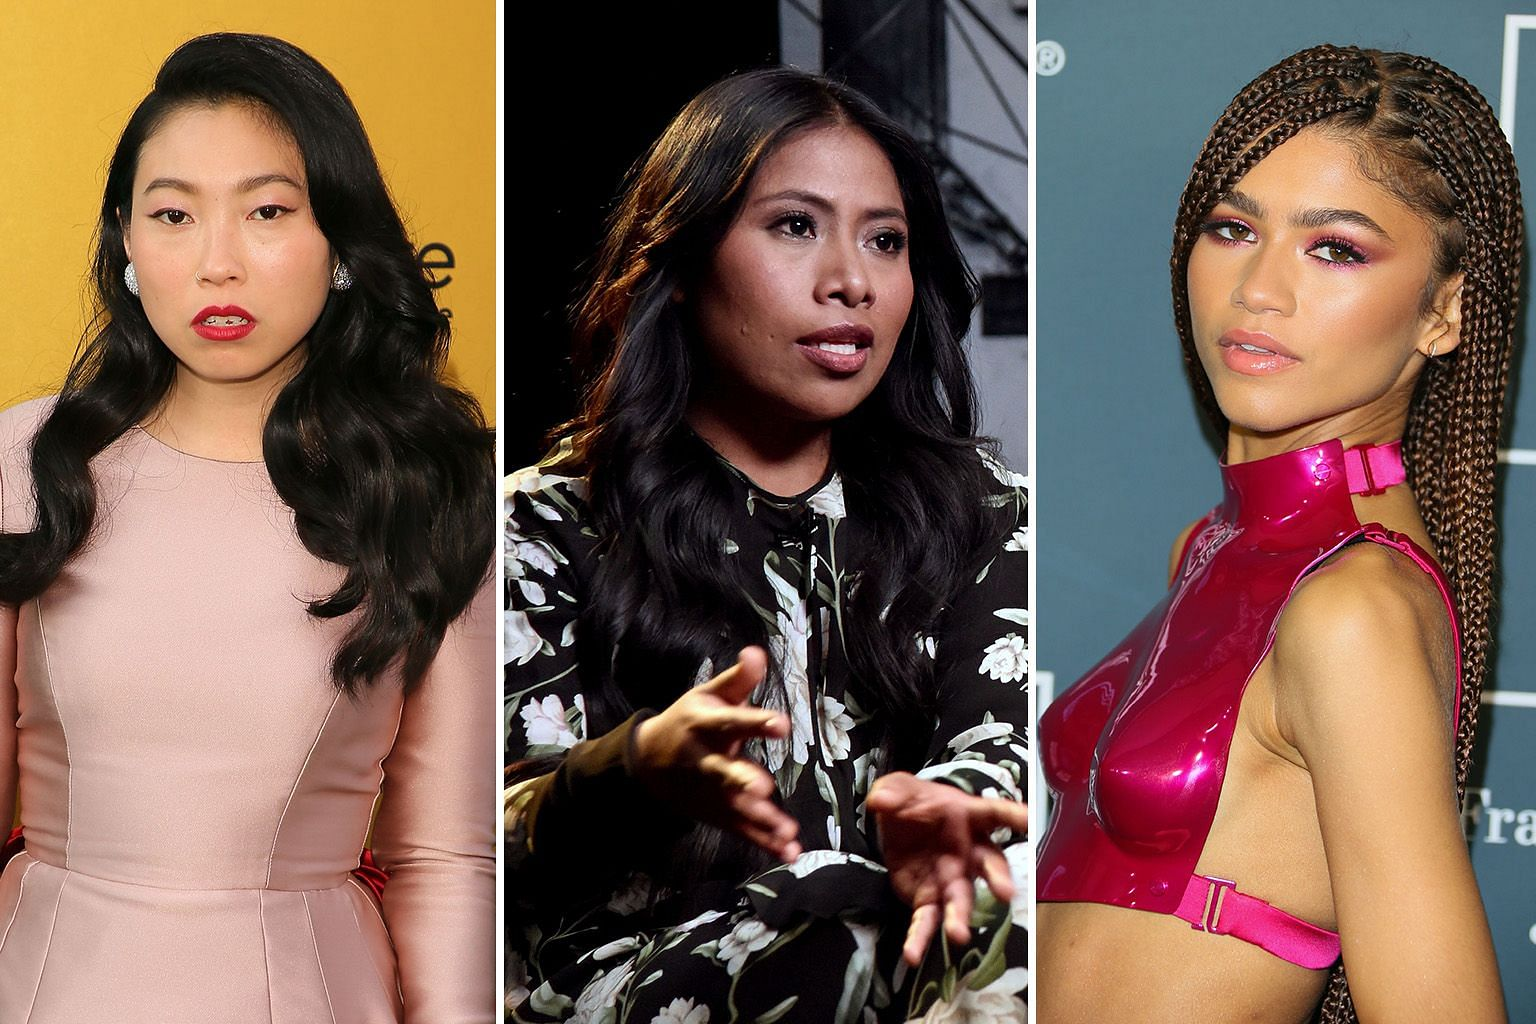 The Academy of Motion Picture Arts and Sciences has invited actresses such as (from far left) Awkwafina, Yalitza Aparicio and Zendaya to join the Oscar voting panel.